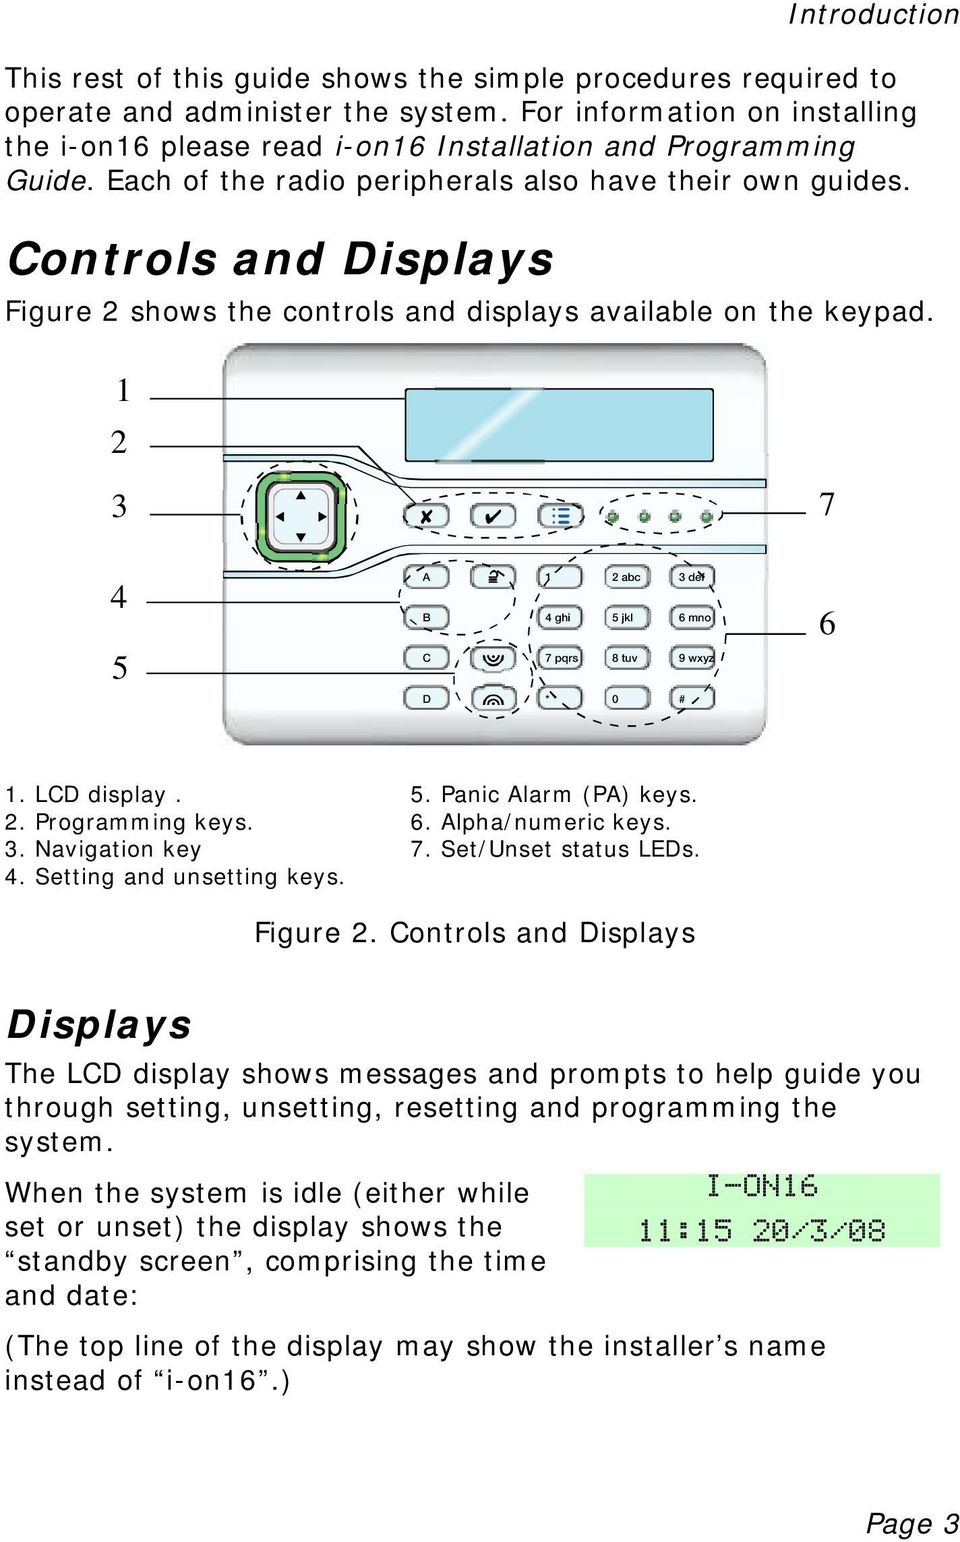 Controls and Displays Figure 2 shows the controls and displays available on the keypad. 1 2 3 7 4 5 A B C 1 4 ghi 7 pqrs 2 abc 3 def 5 jkl 6 mno 8 tuv 9 wxyz 6 D * 0 # 1. LCD display. 5. Panic Alarm (PA) keys.